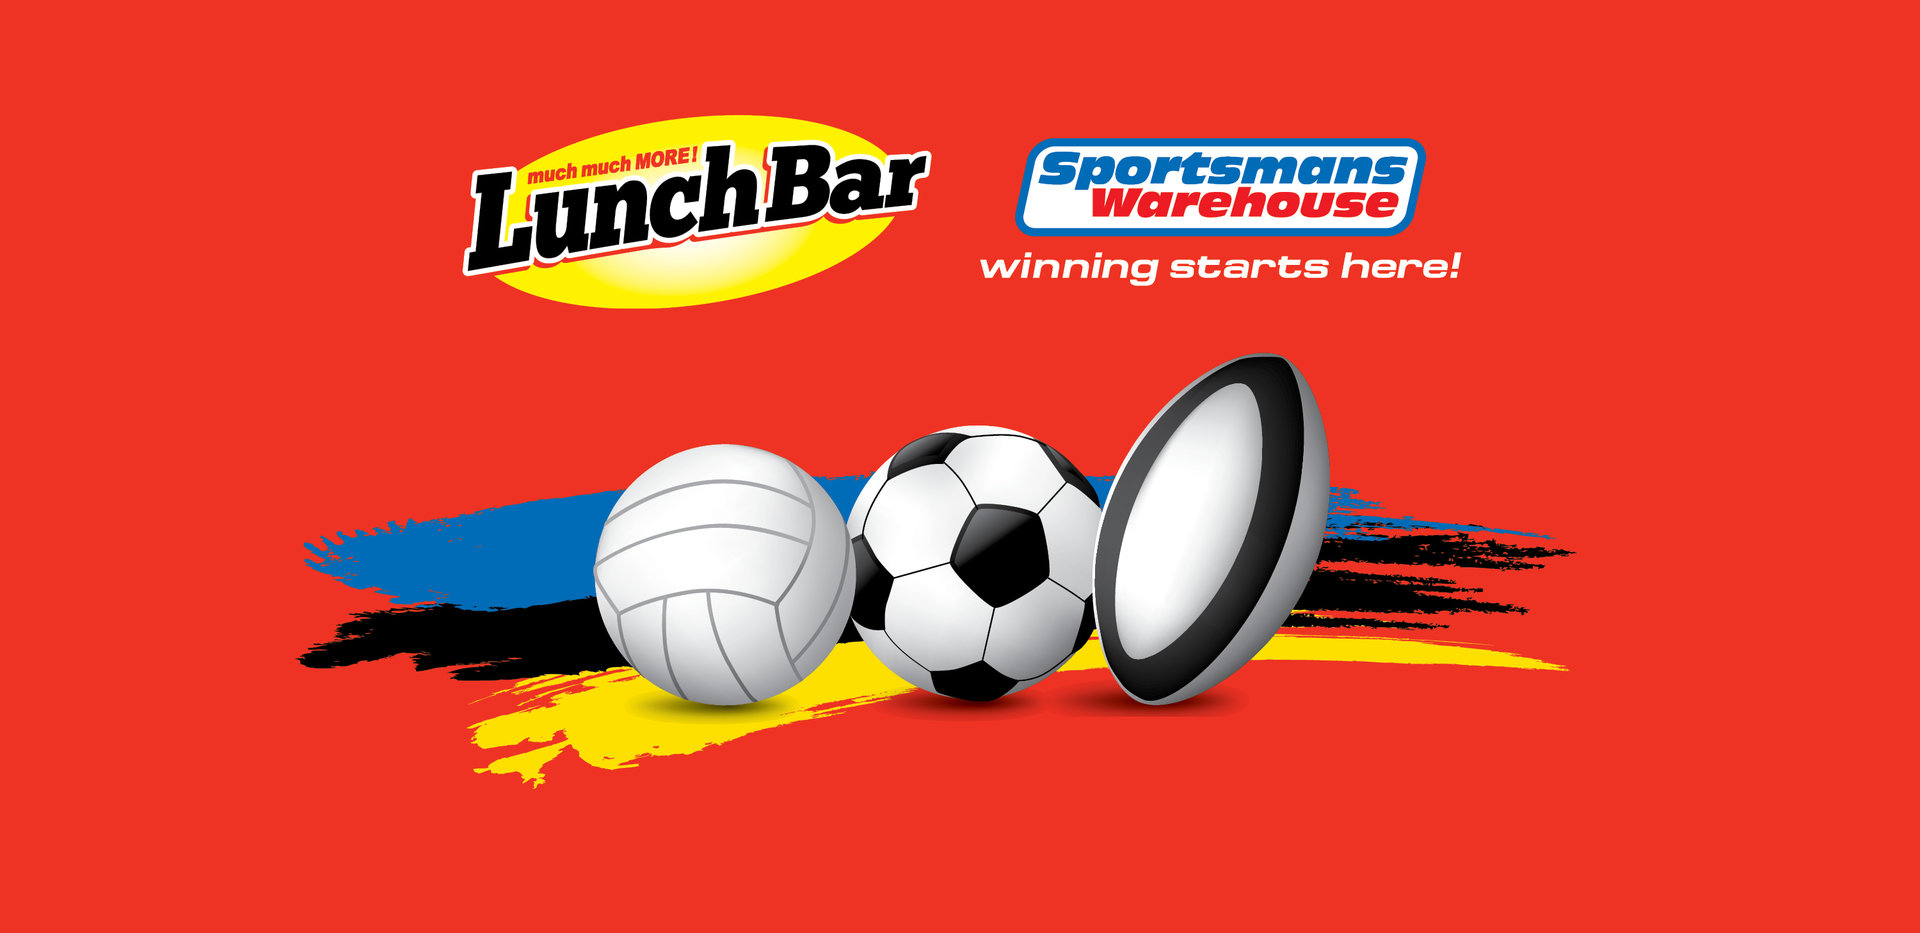 Cadbury Lunch Bar brings #MuchMuchMore spirit by donating sport balls to communities in South Africa!